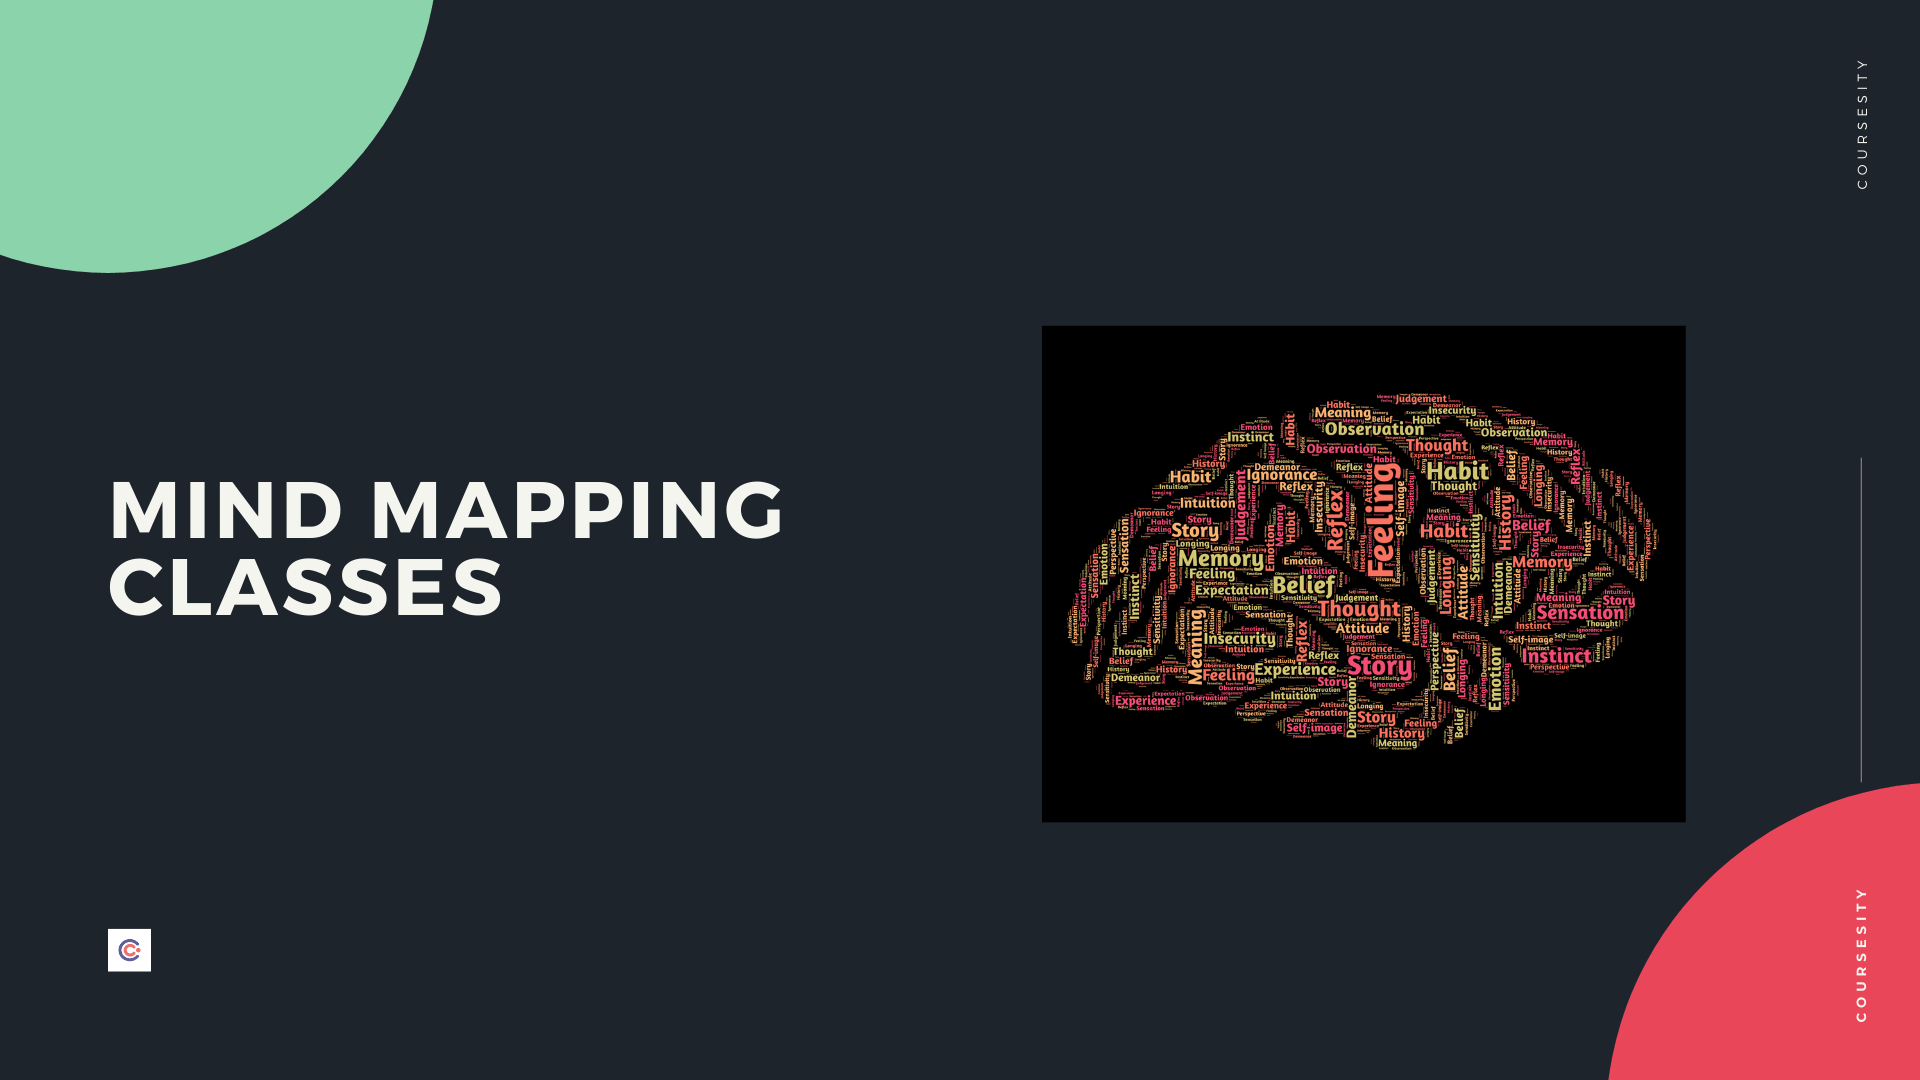 5 Best Mind Mapping Classes - Learn Mind Mapping Online